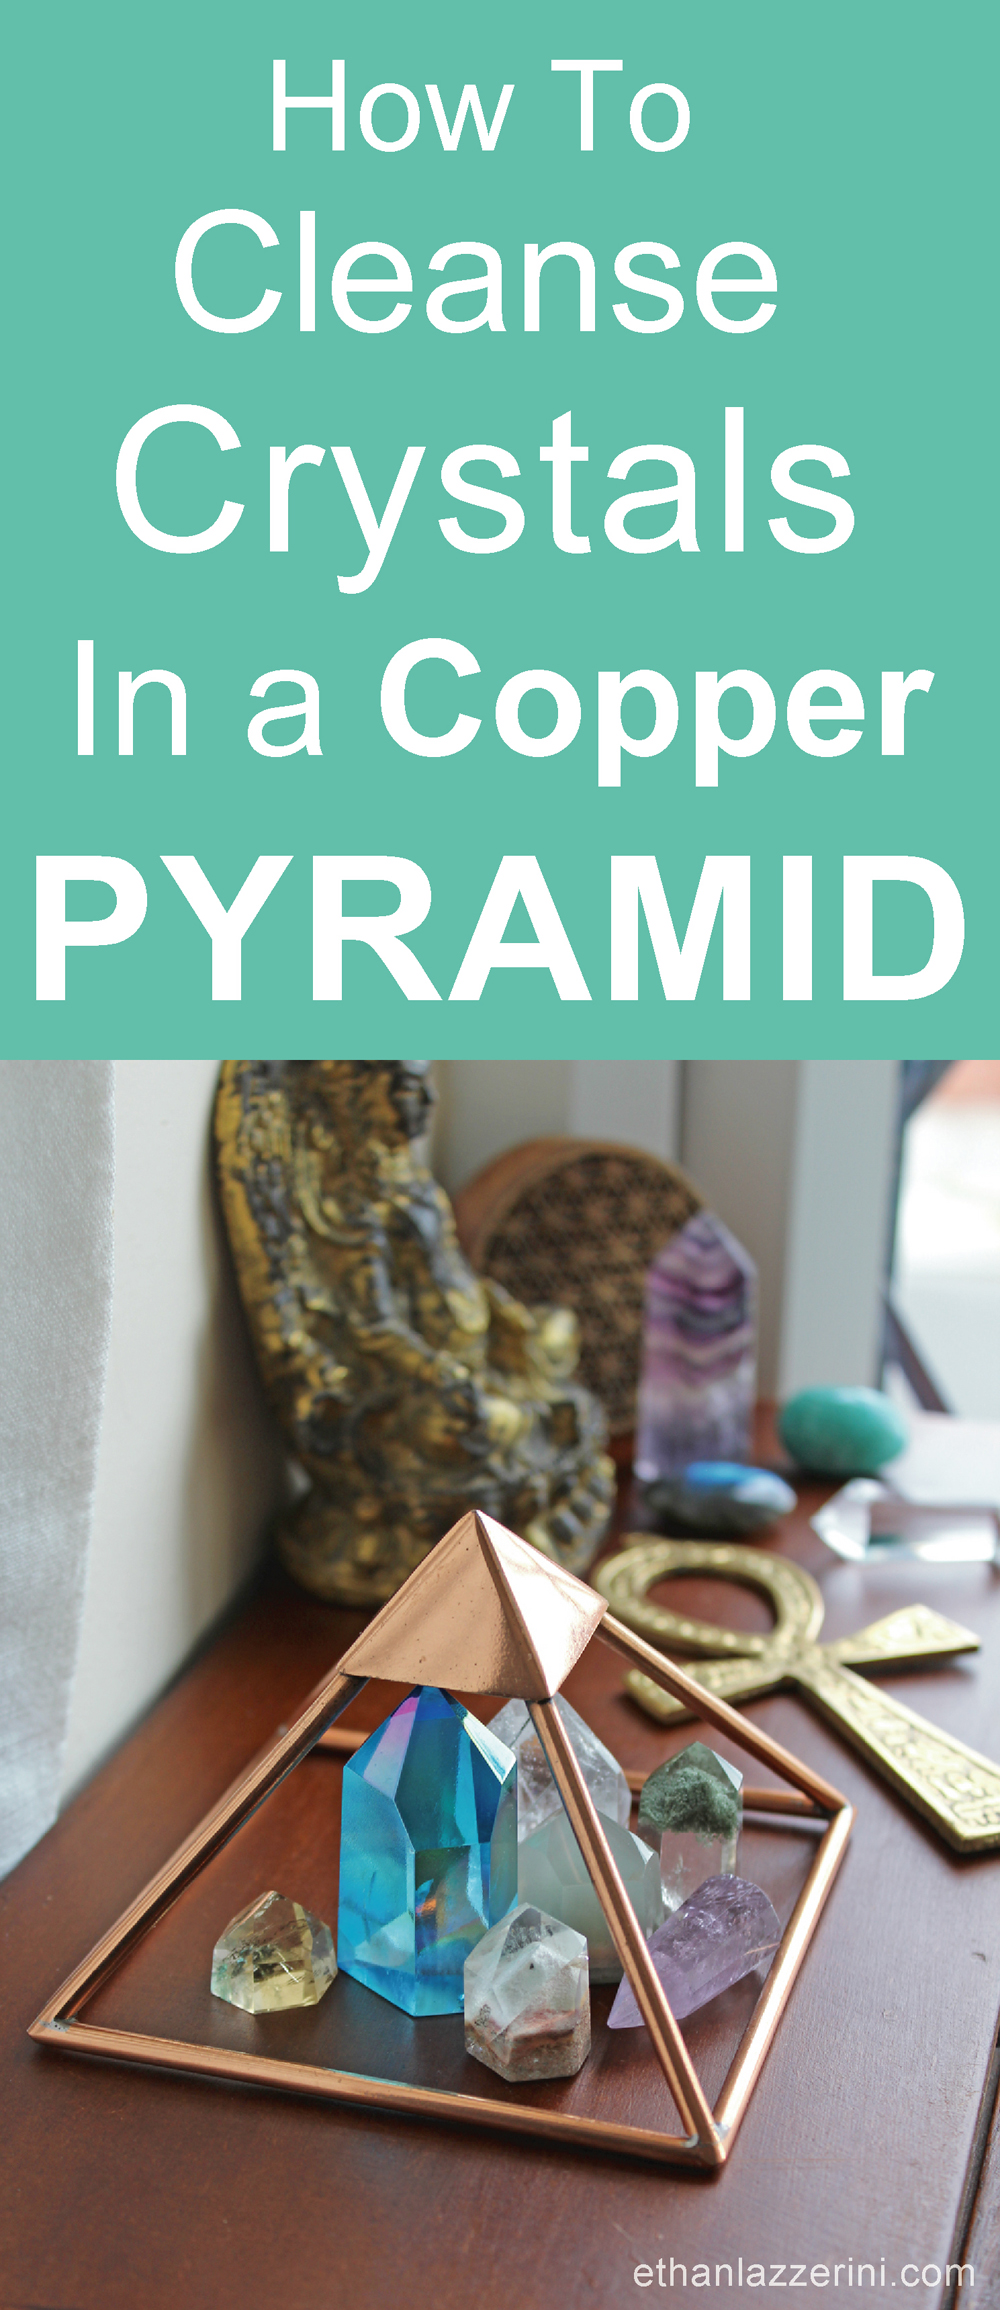 Cleanse Crystals in a Copper Pyramid